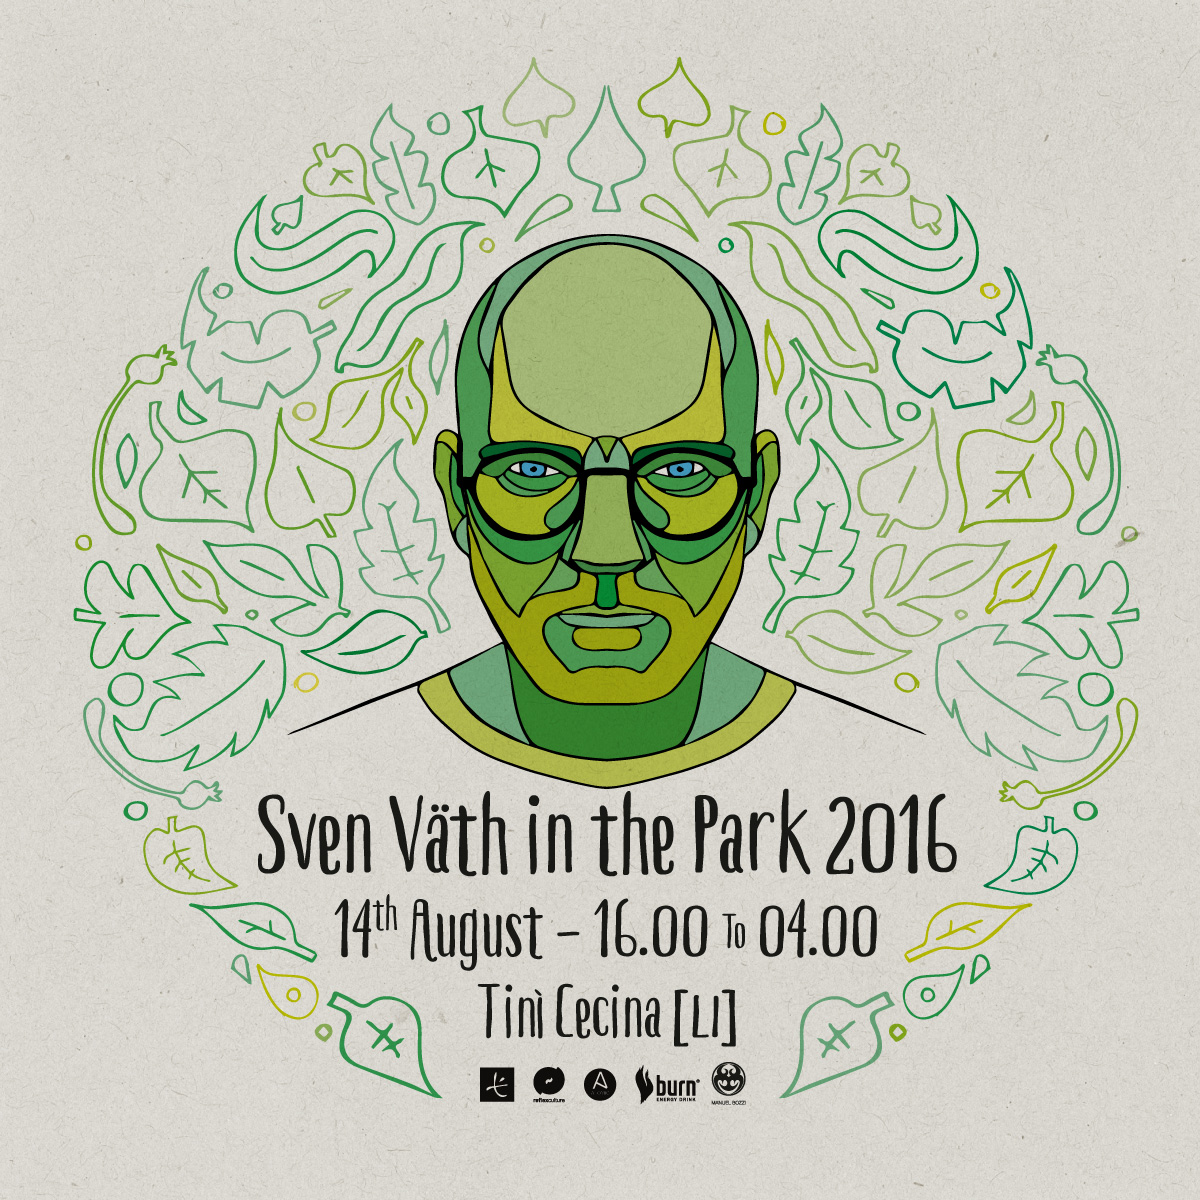 Sven Vath in the park 2016 - flyer